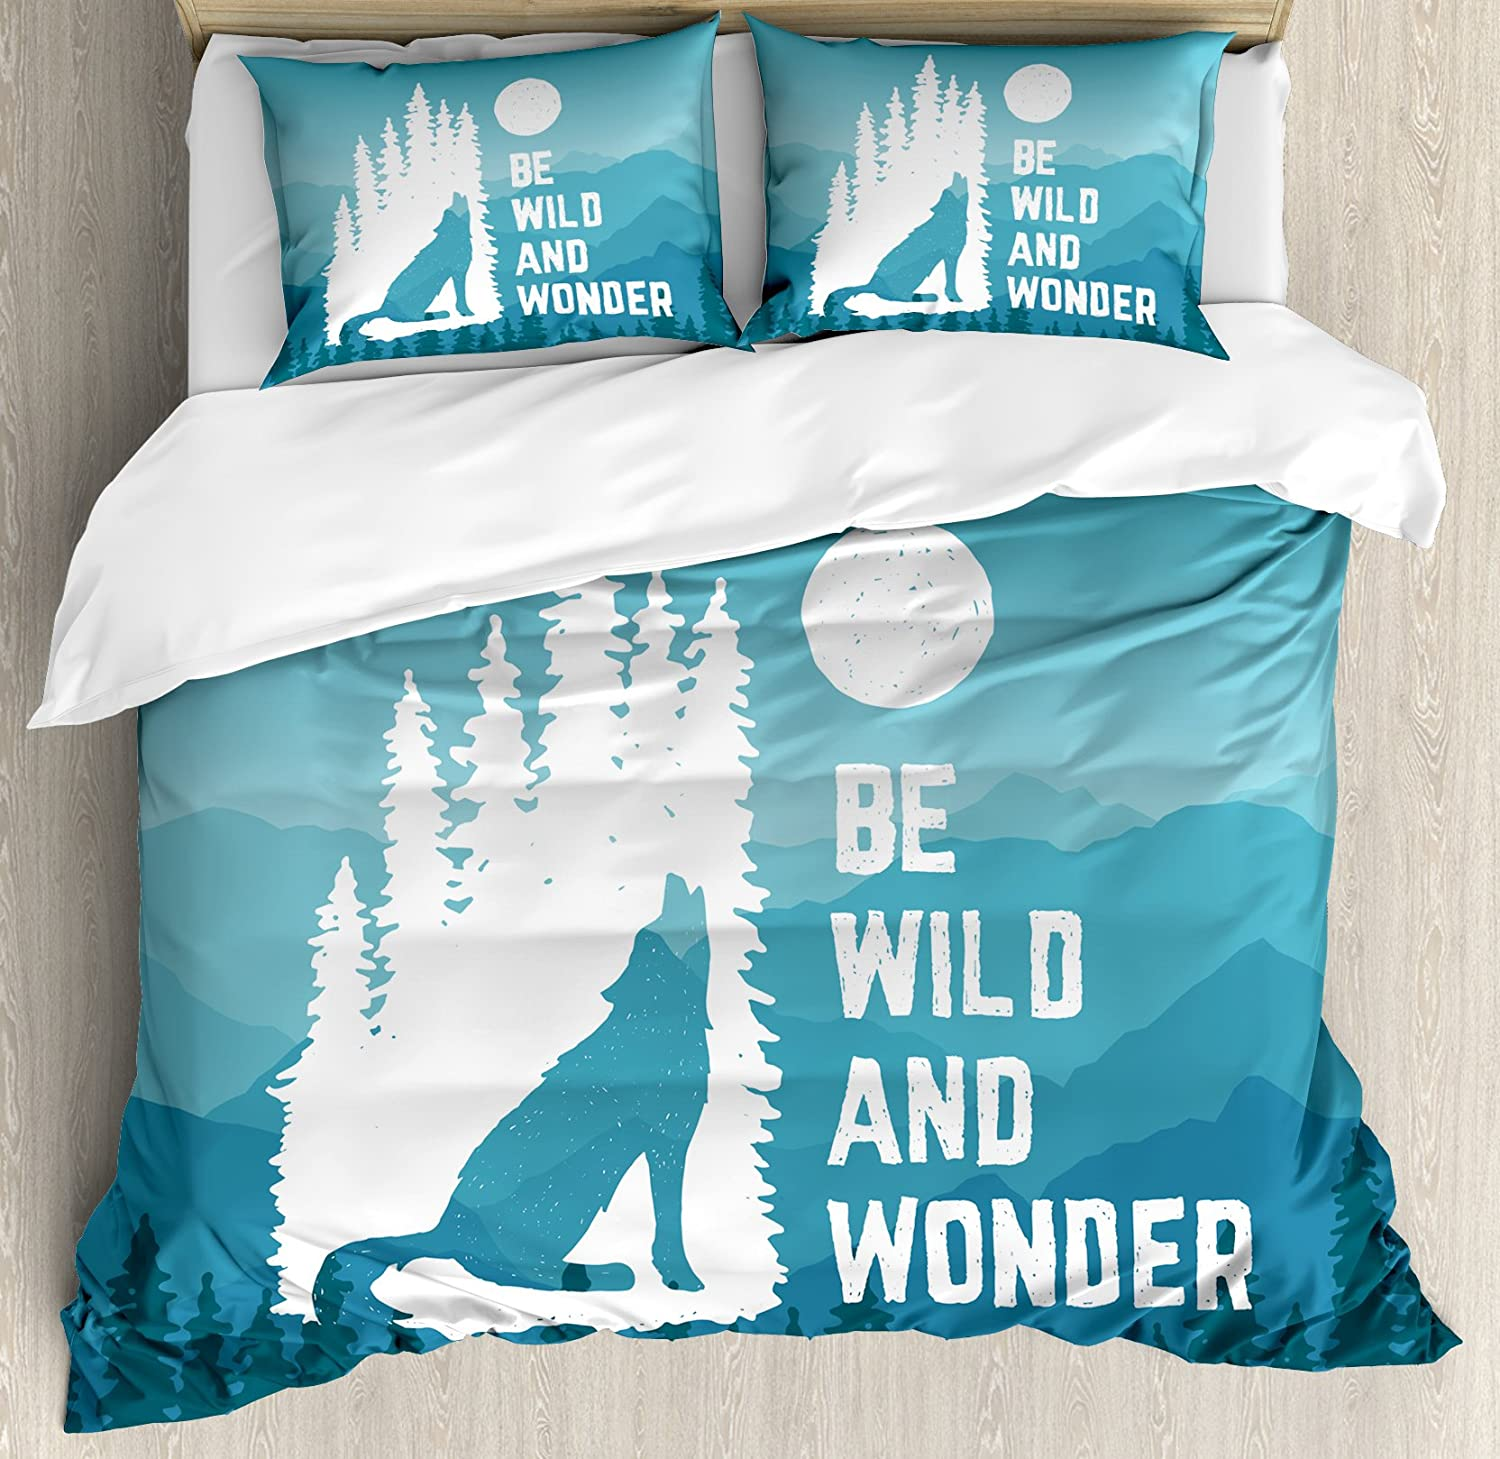 Ambesonne Adventure Duvet Cover Set, Hand Drawn Be Wild and Wonder Words Howling Wolf in The Woods Under Moon, Decorative 3 Piece Bedding Set with 2 Pillow Shams, Queen Size, Night Blue